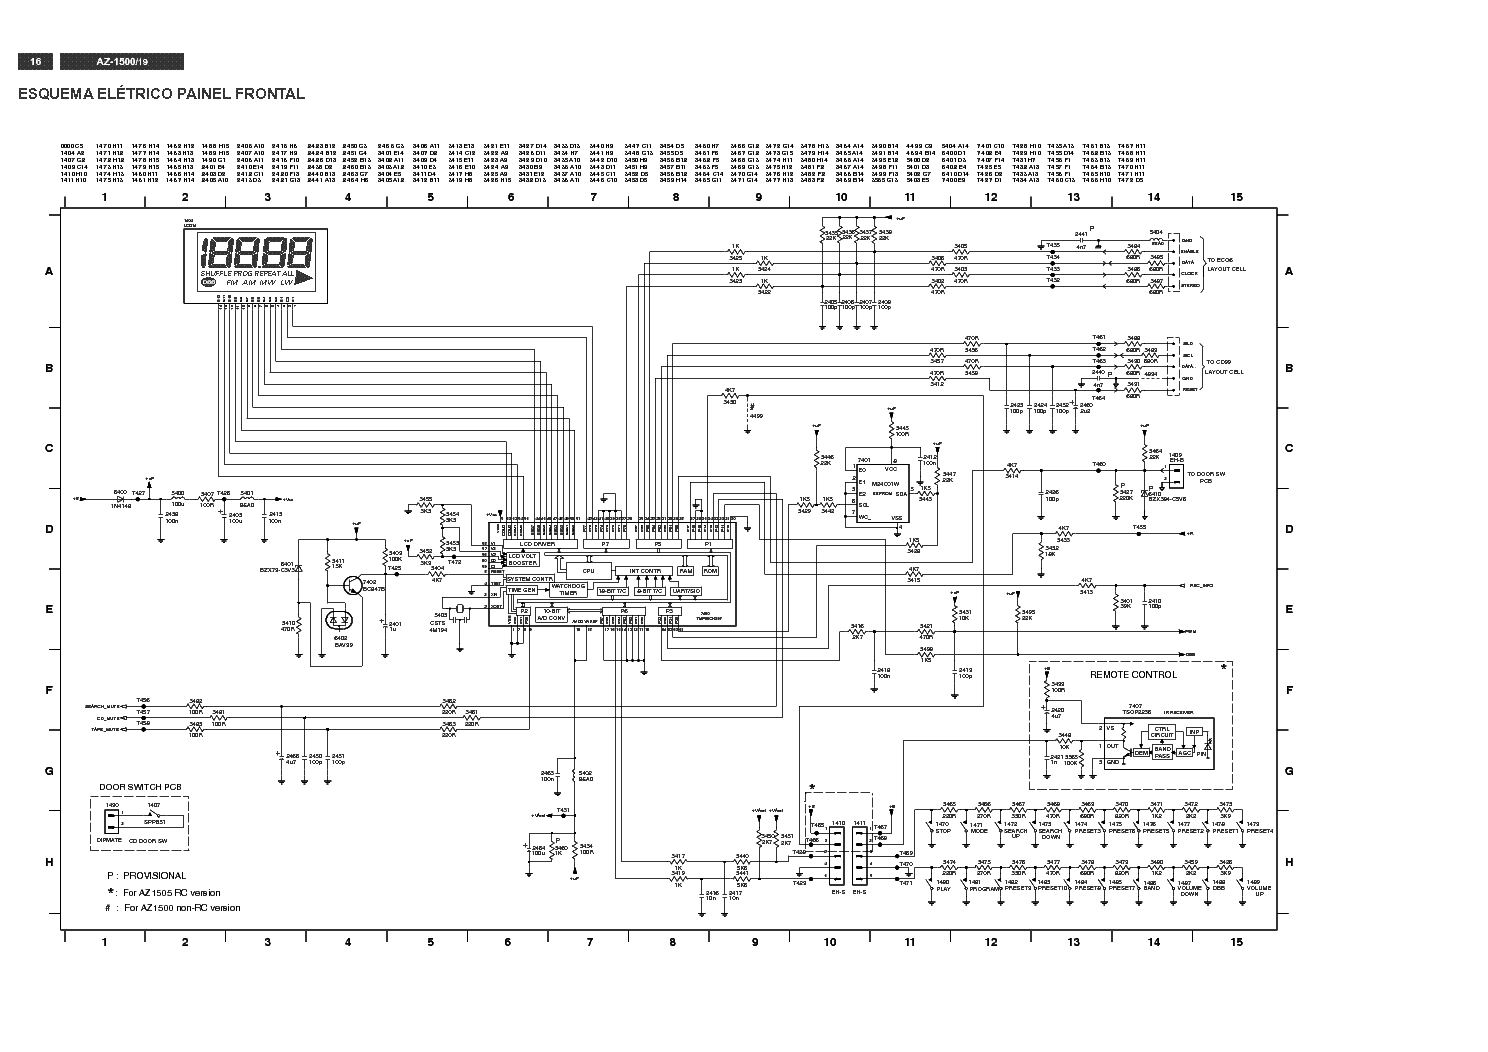 boeing wiring diagram manual doent d6 54446 on